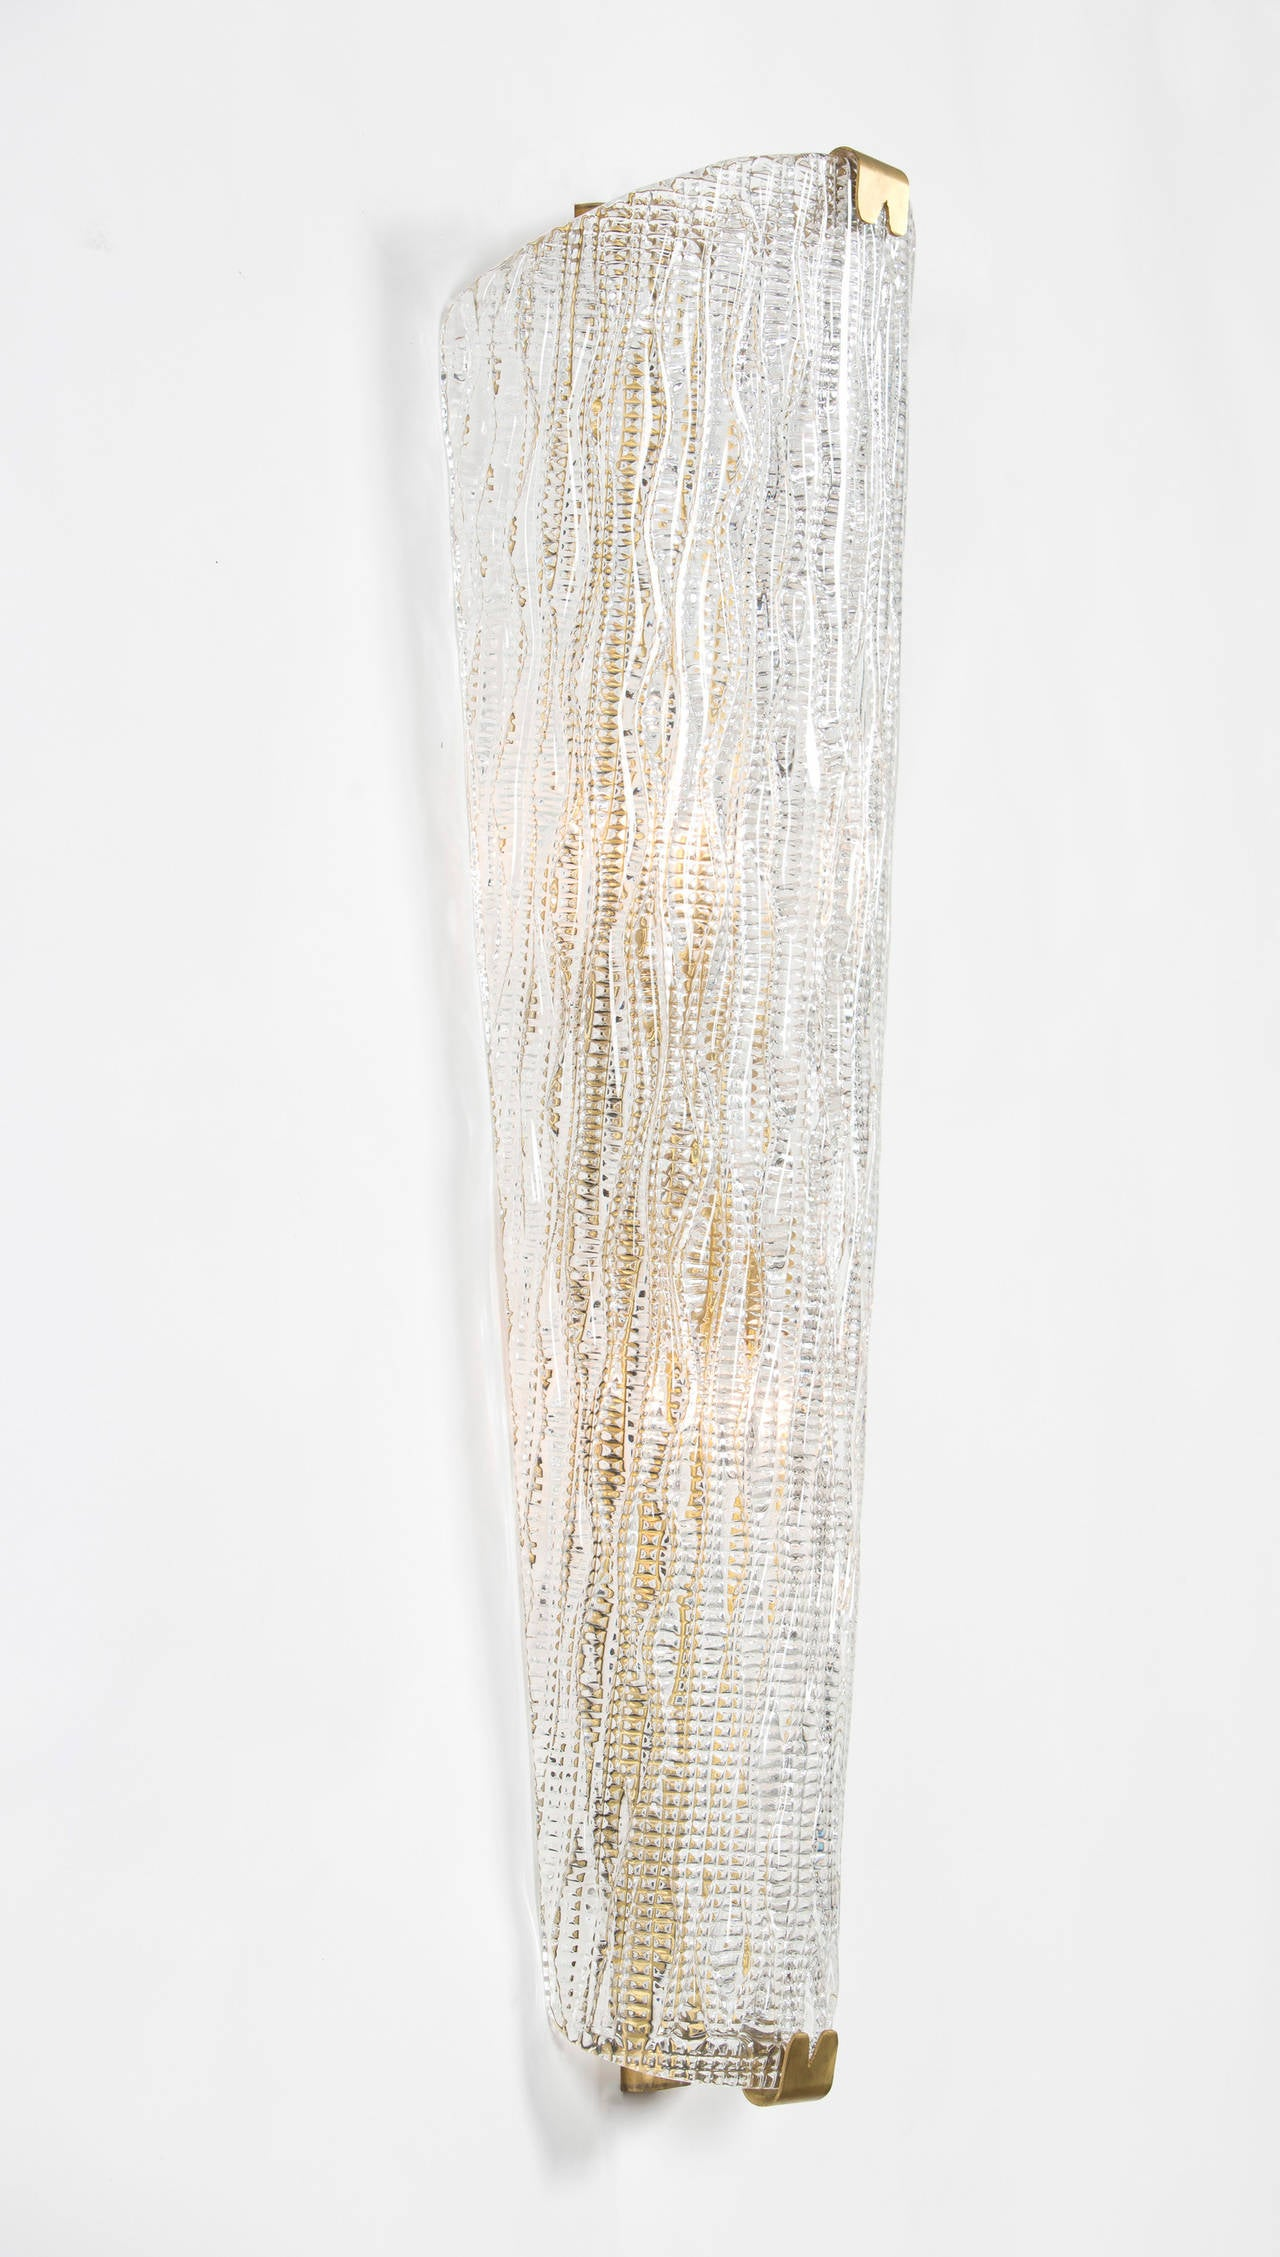 Murano Glass Wall Sconces by Barovier For Sale at 1stdibs